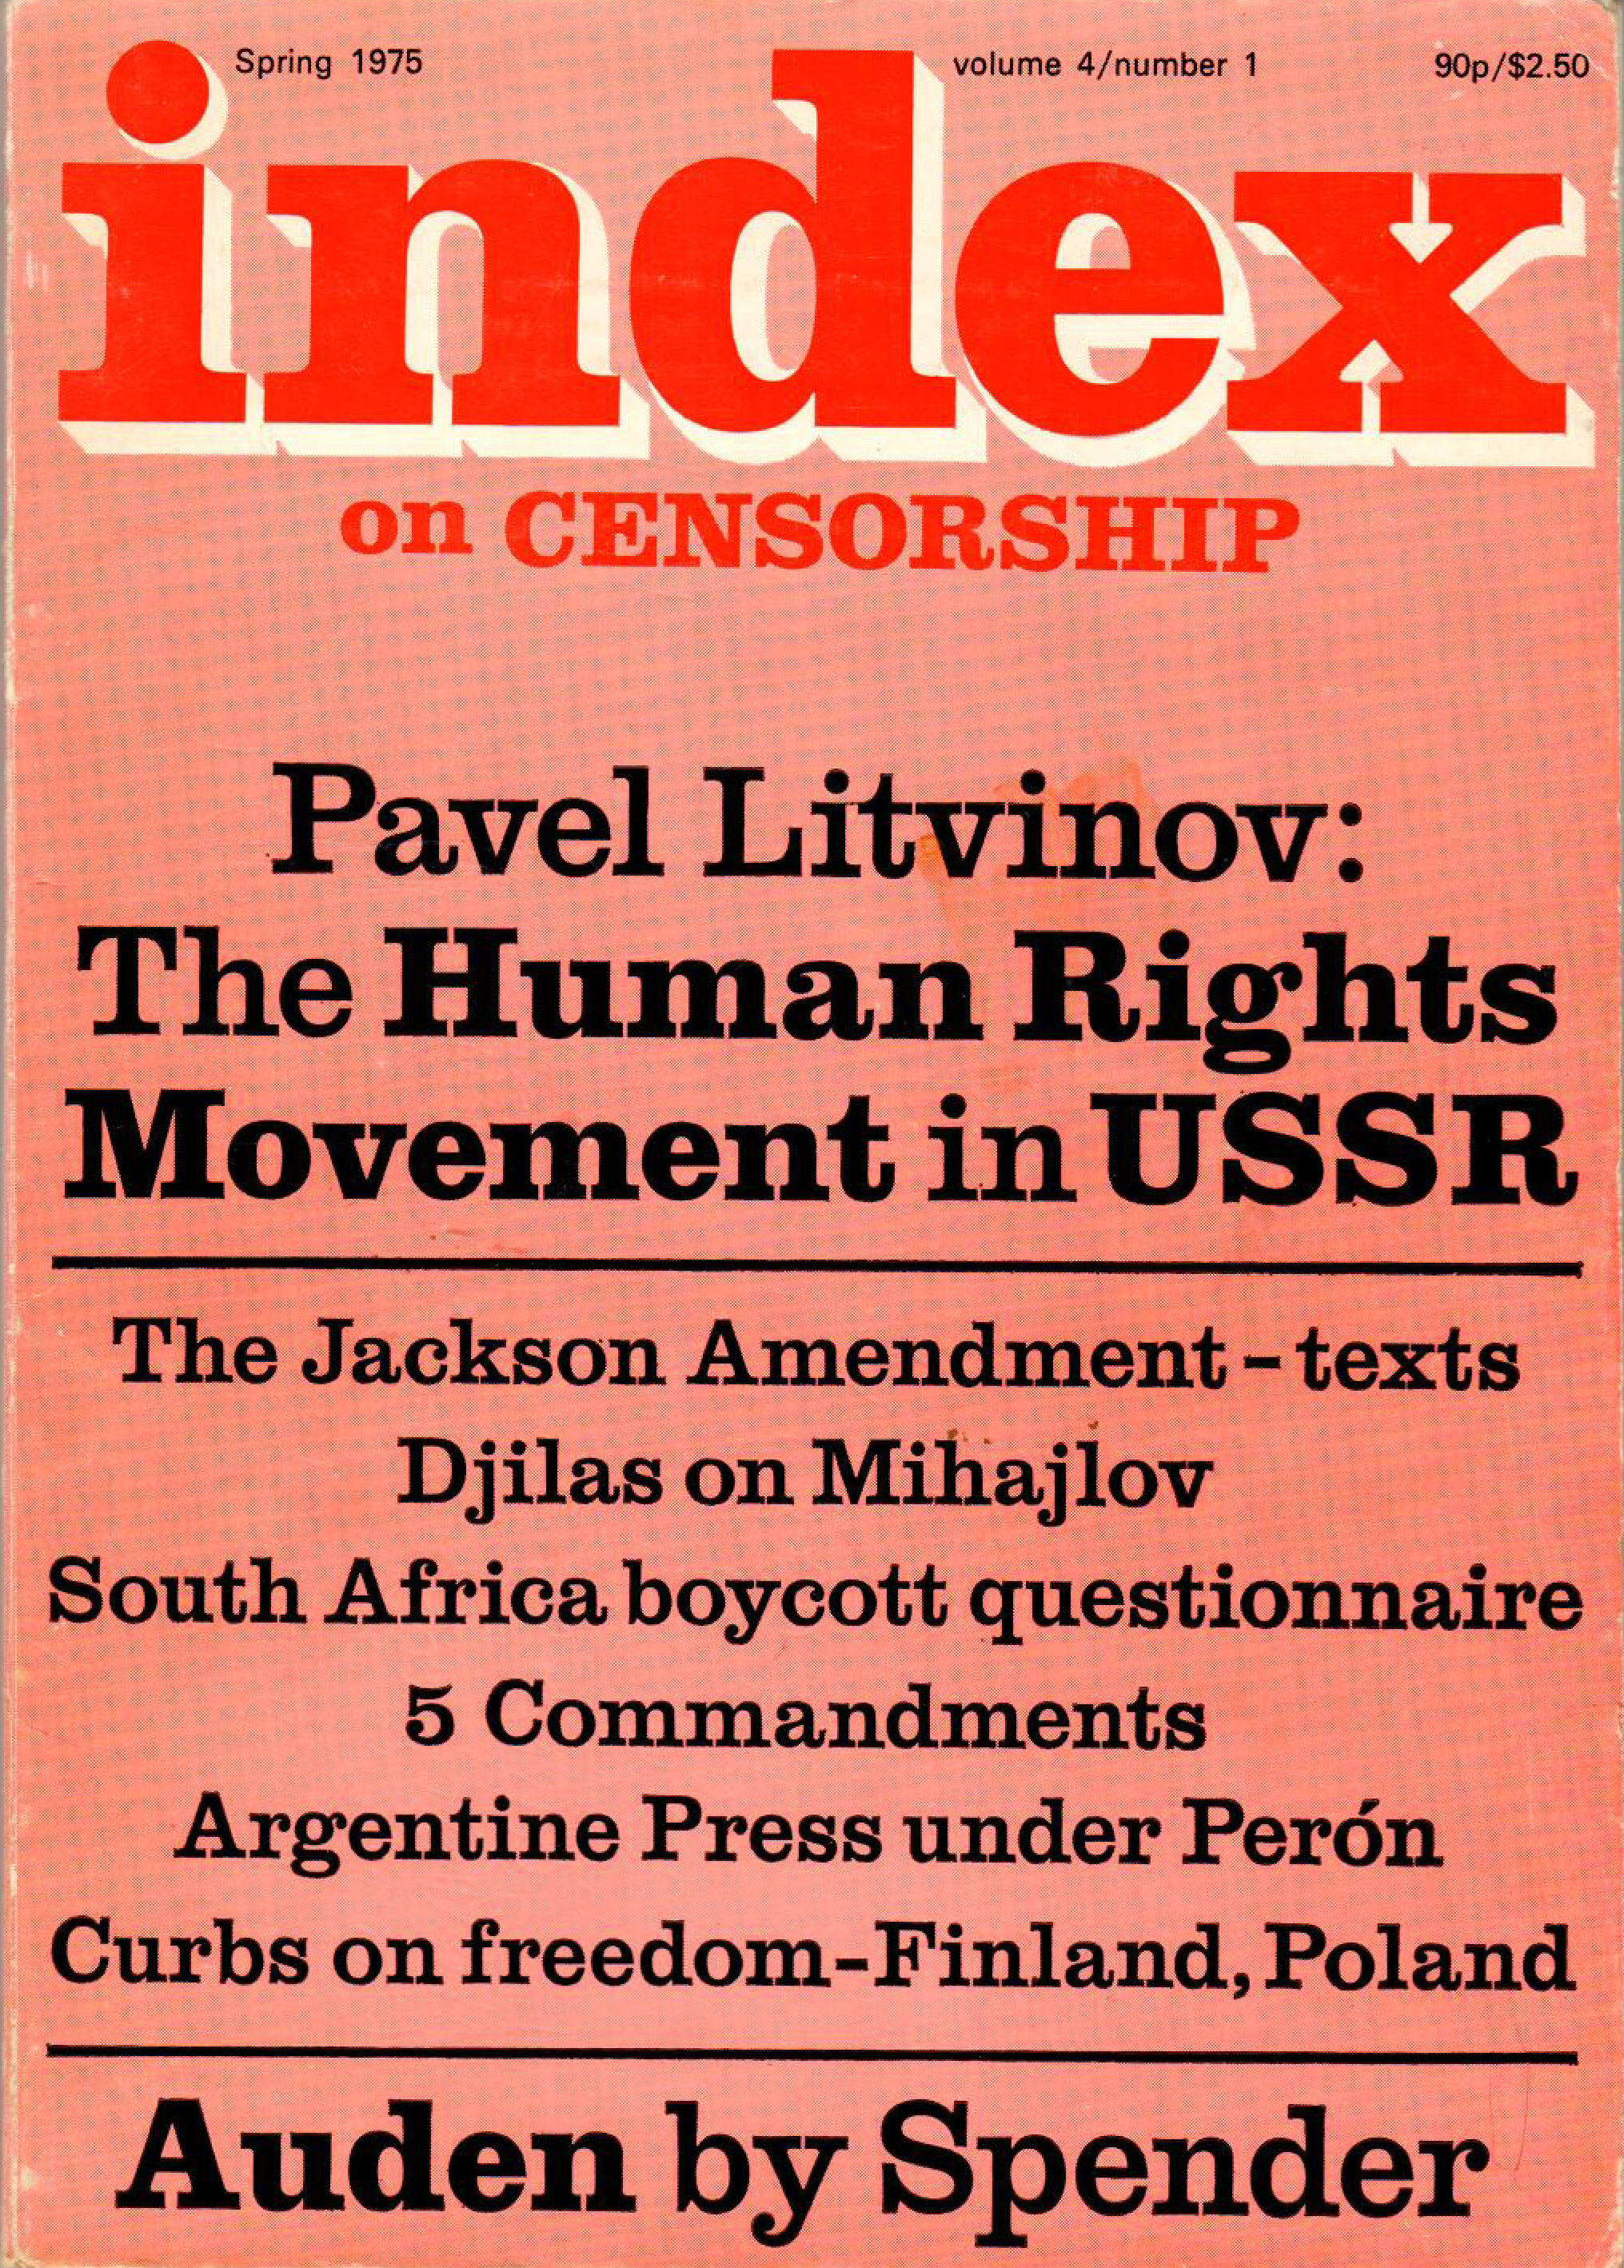 The human rights movement in USSR, the Spring 1975 issue of Index on Censorship magazine